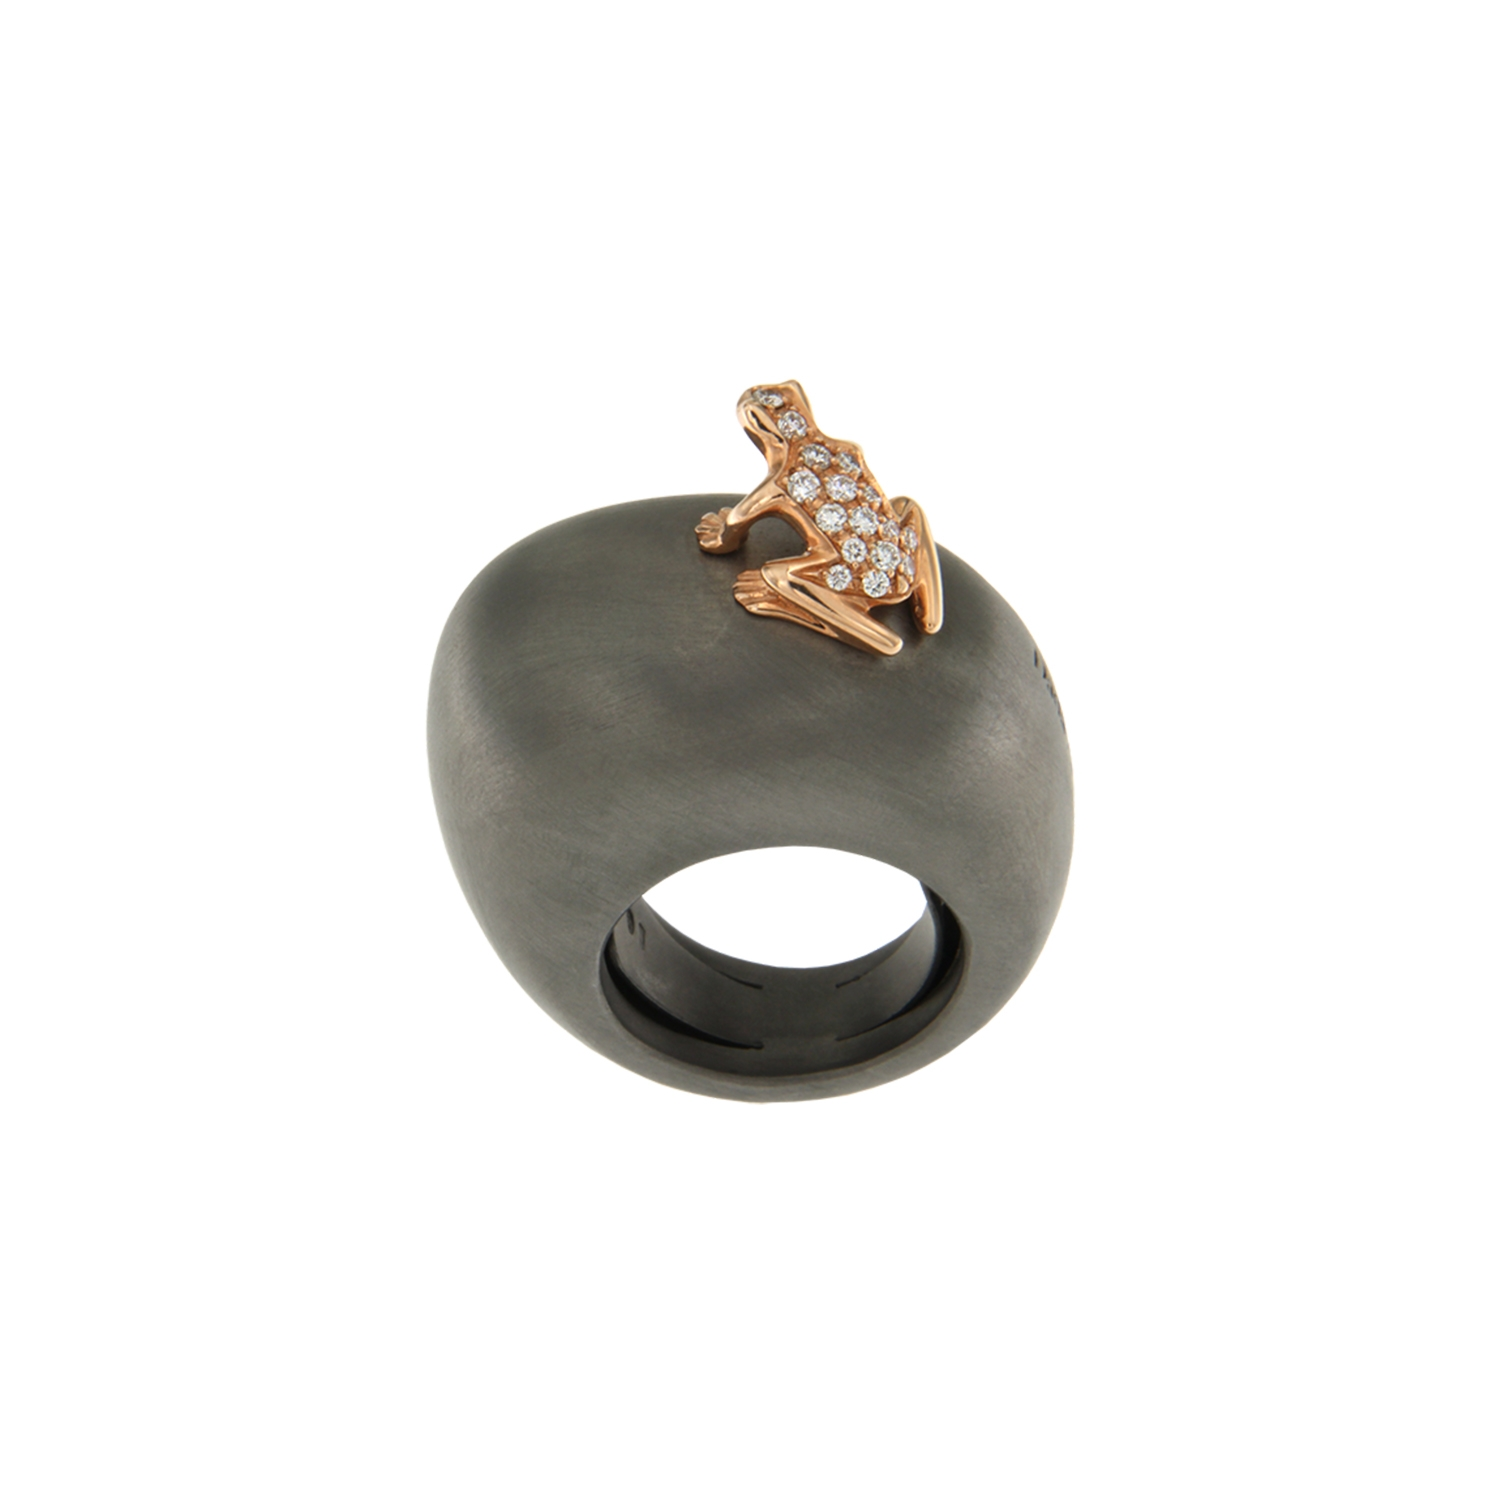 Ring in cataphoresis treated silver, 18k gold and diamonds